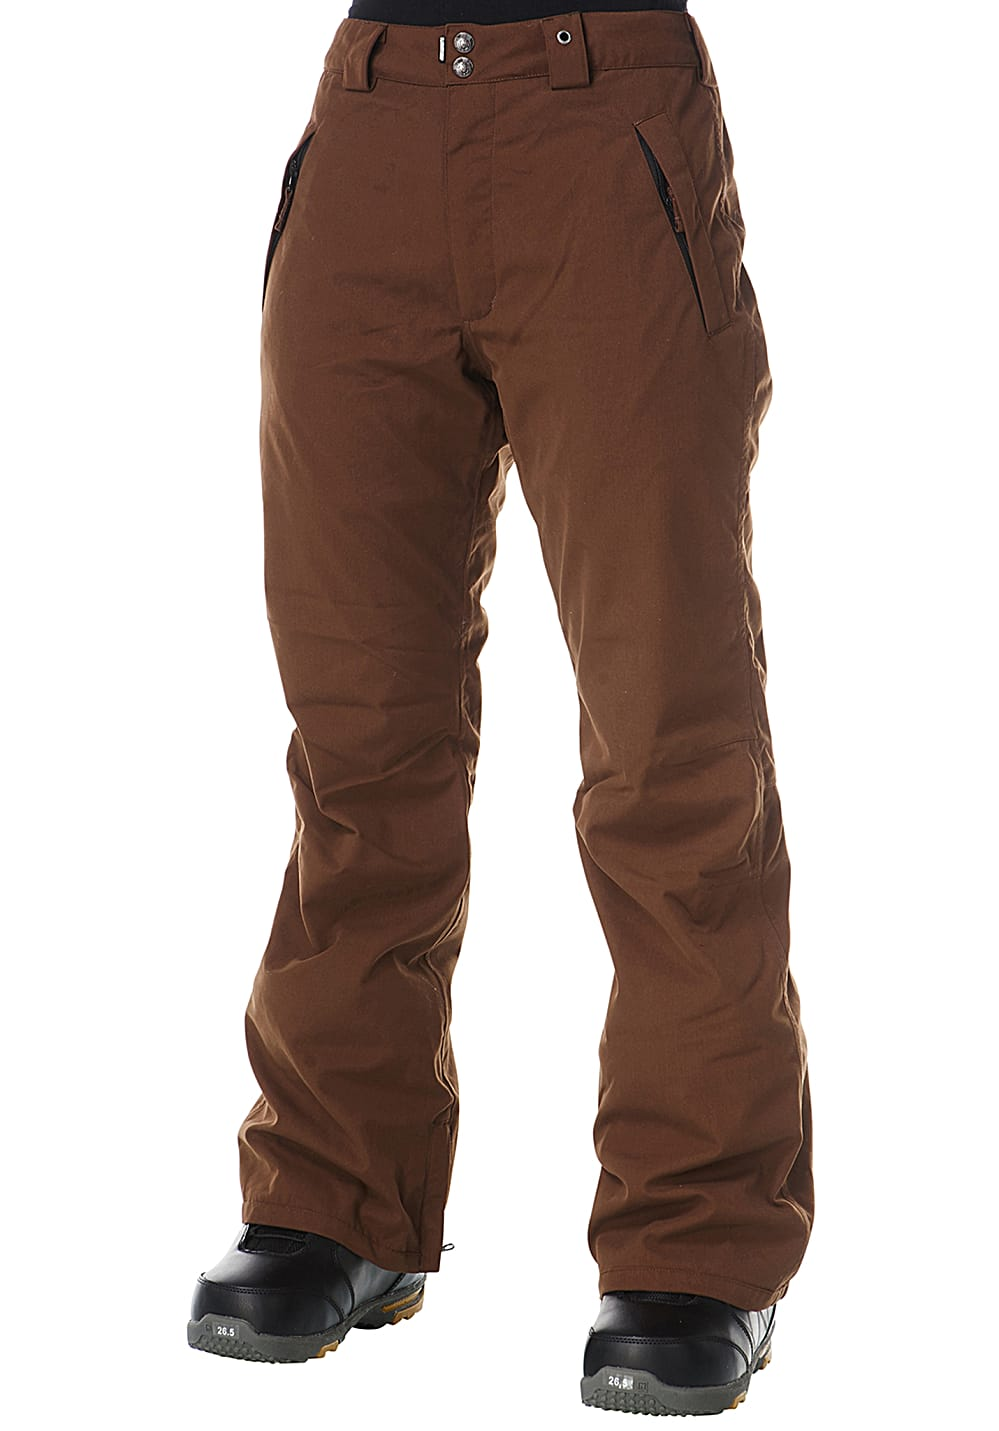 Light Yoko - Snowboardhose für Damen - Braun | Sportbekleidung > Sporthosen > Snowboardhosen | Dark - Brown | Fleece - Taft - Polyester | Light